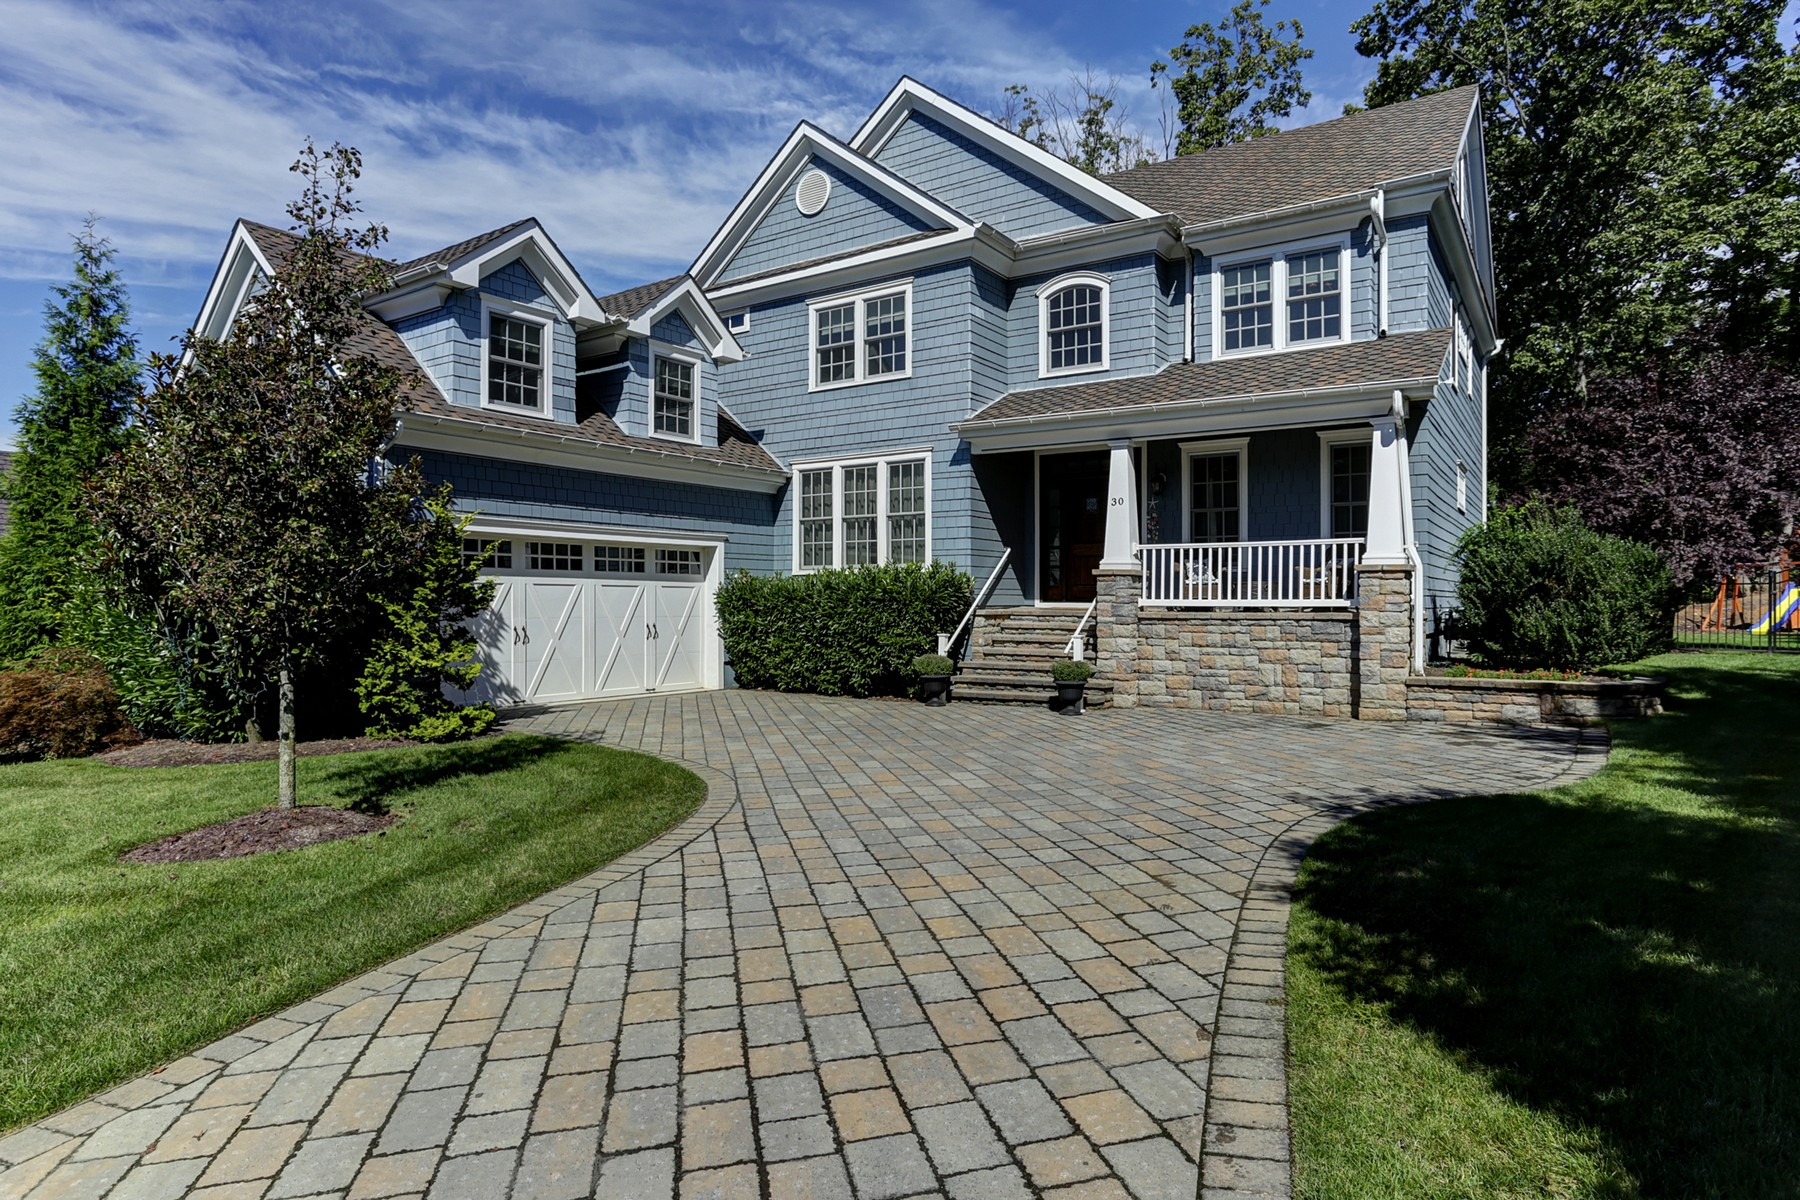 Single Family Home for Sale at Young Navesink Colonial 30 Ridgeview Ave Middletown, New Jersey, 07716 United States